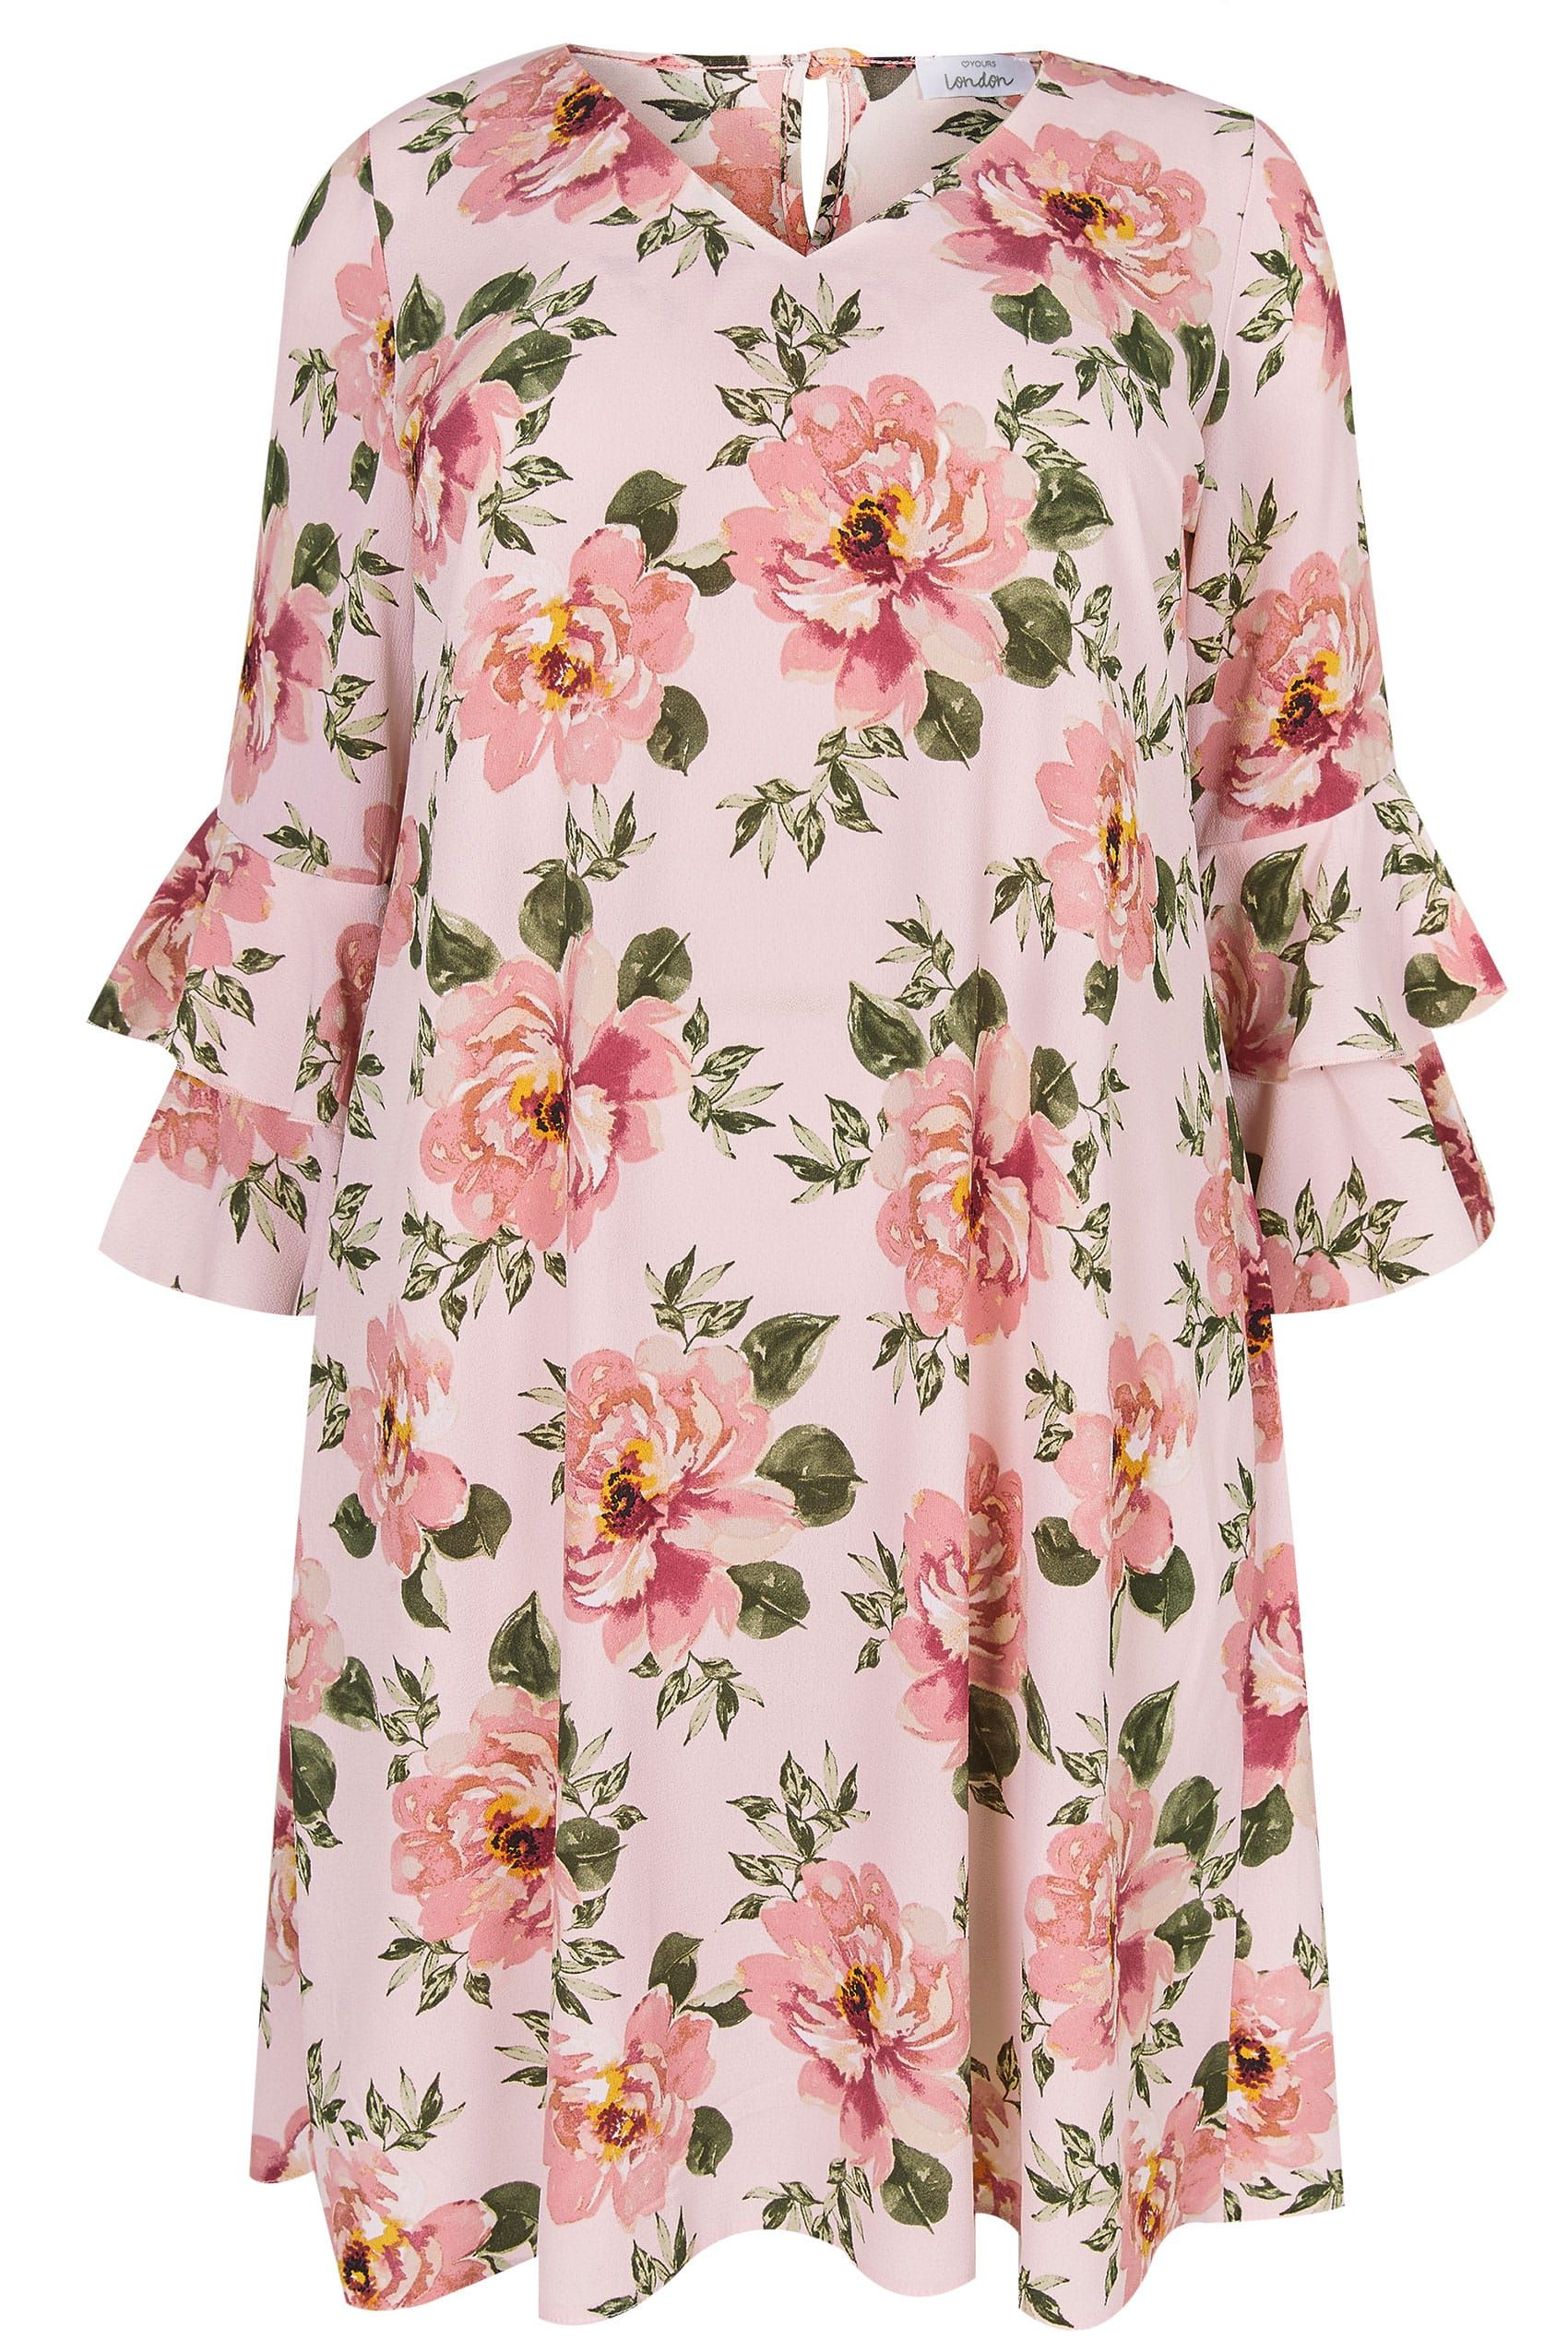 02da3c97654 YOURS LONDON Pink Floral Print Shift Dress With Layered Flute Sleeves